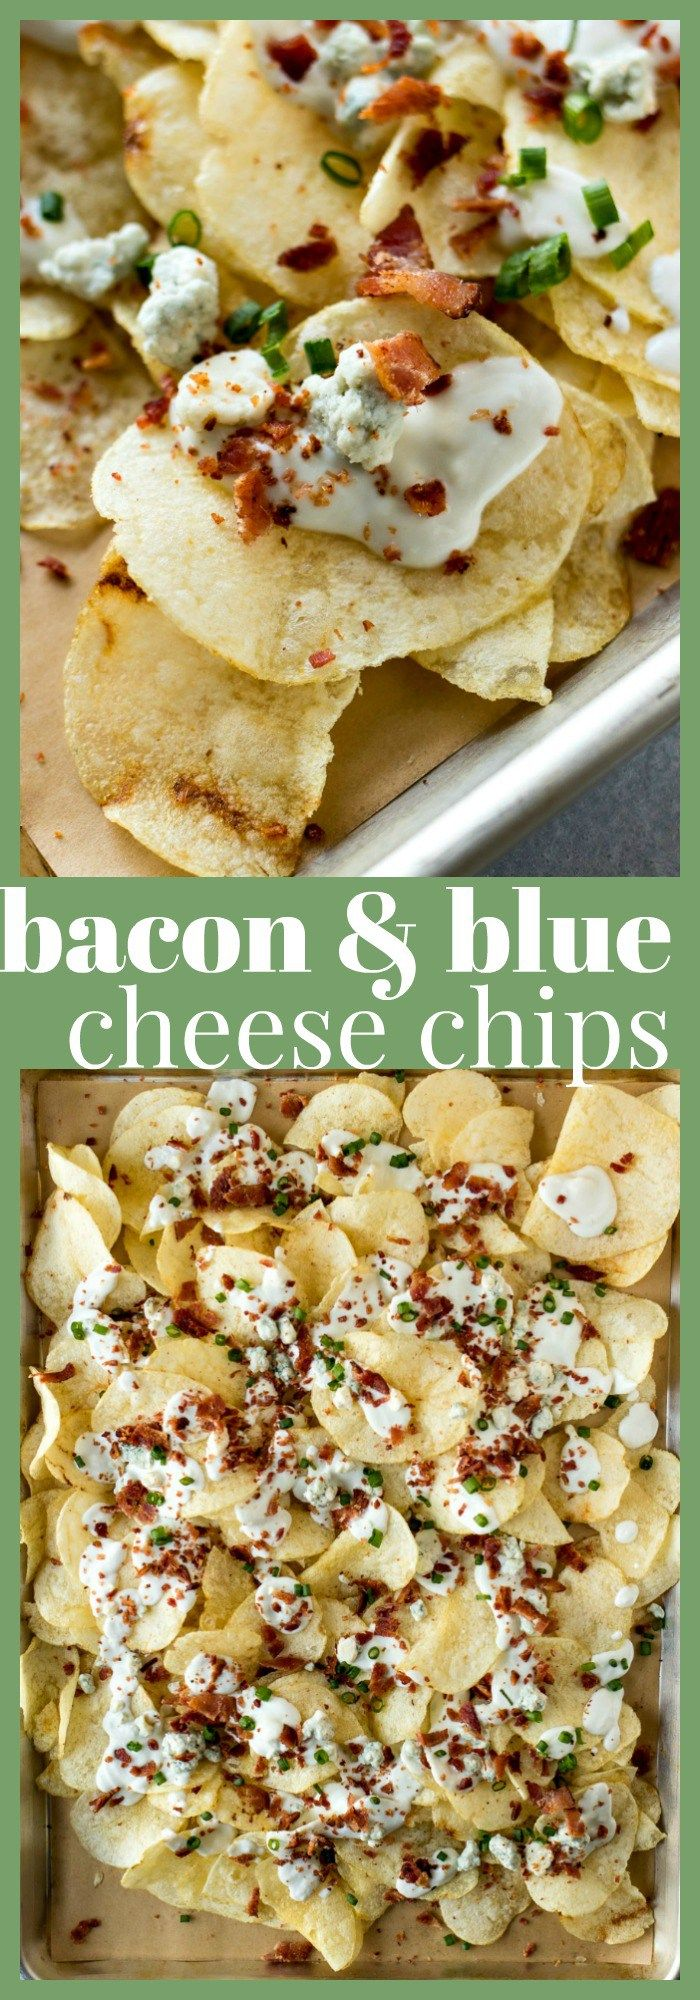 LAY'S Classic Potato Chips are covered with a homemade blue cheese sauce, blue cheese crumbles, bacon, and chopped scallions. It's the perfect snack to feed a crowd during the big football game!